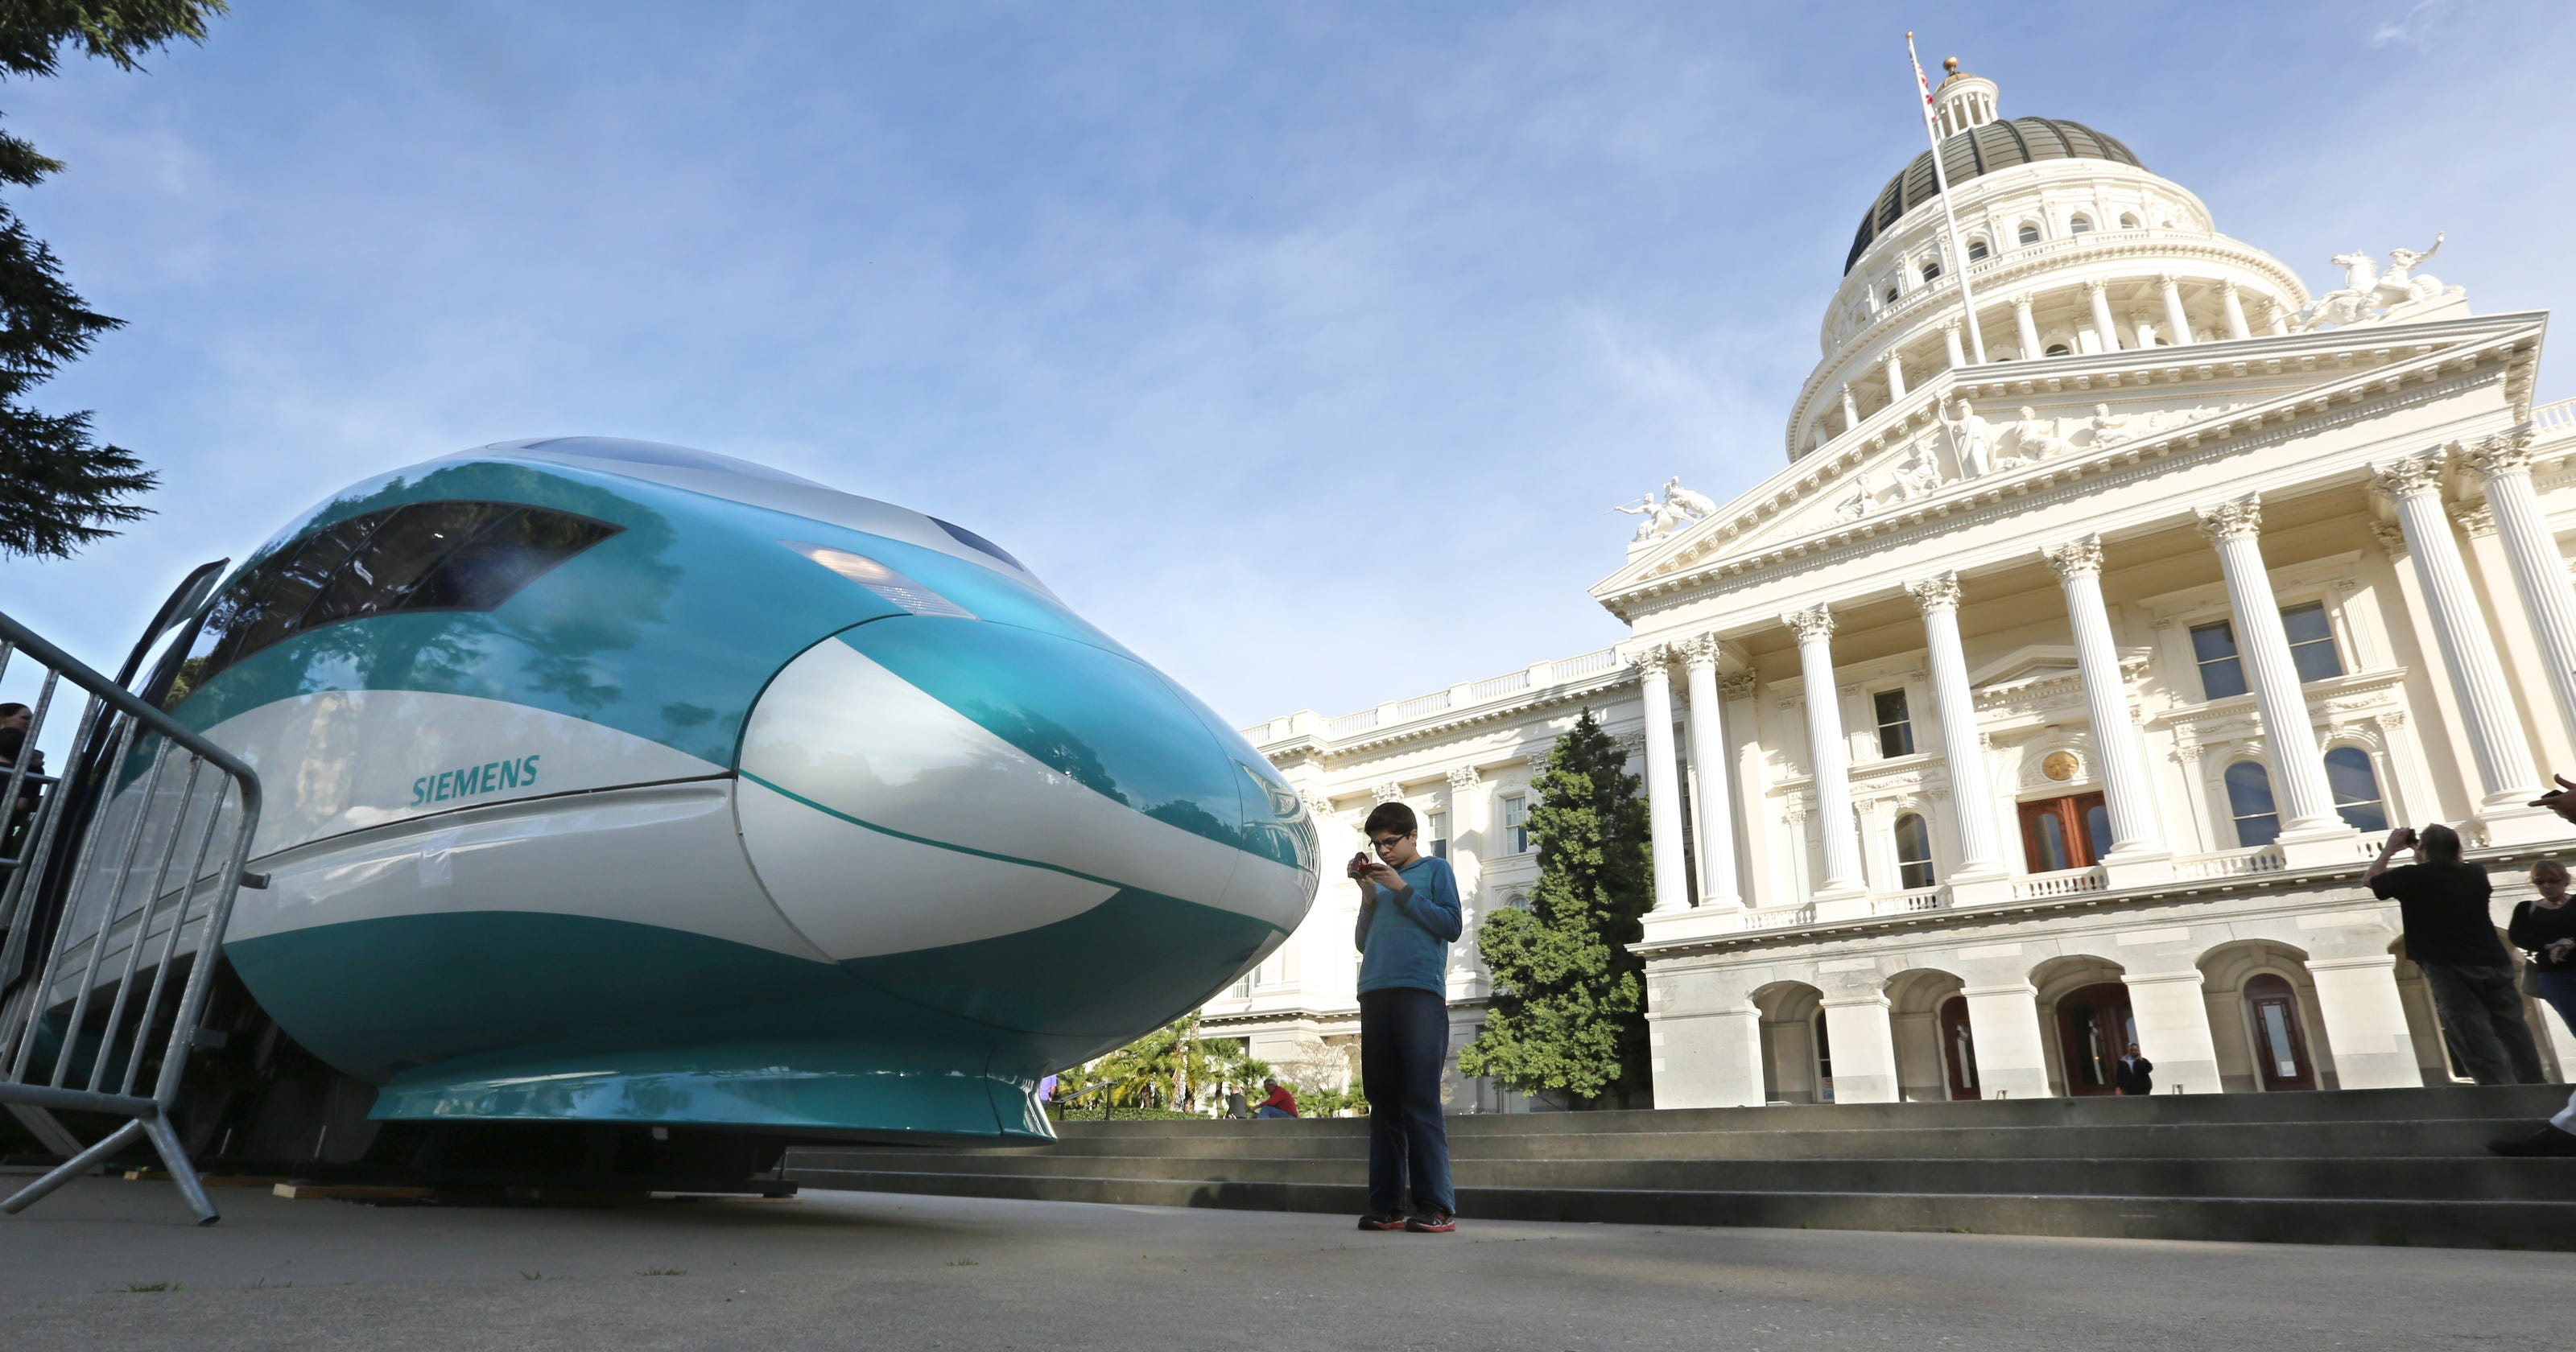 Calif 's high-speed rail lawsuit delays cost $63M, 17 months